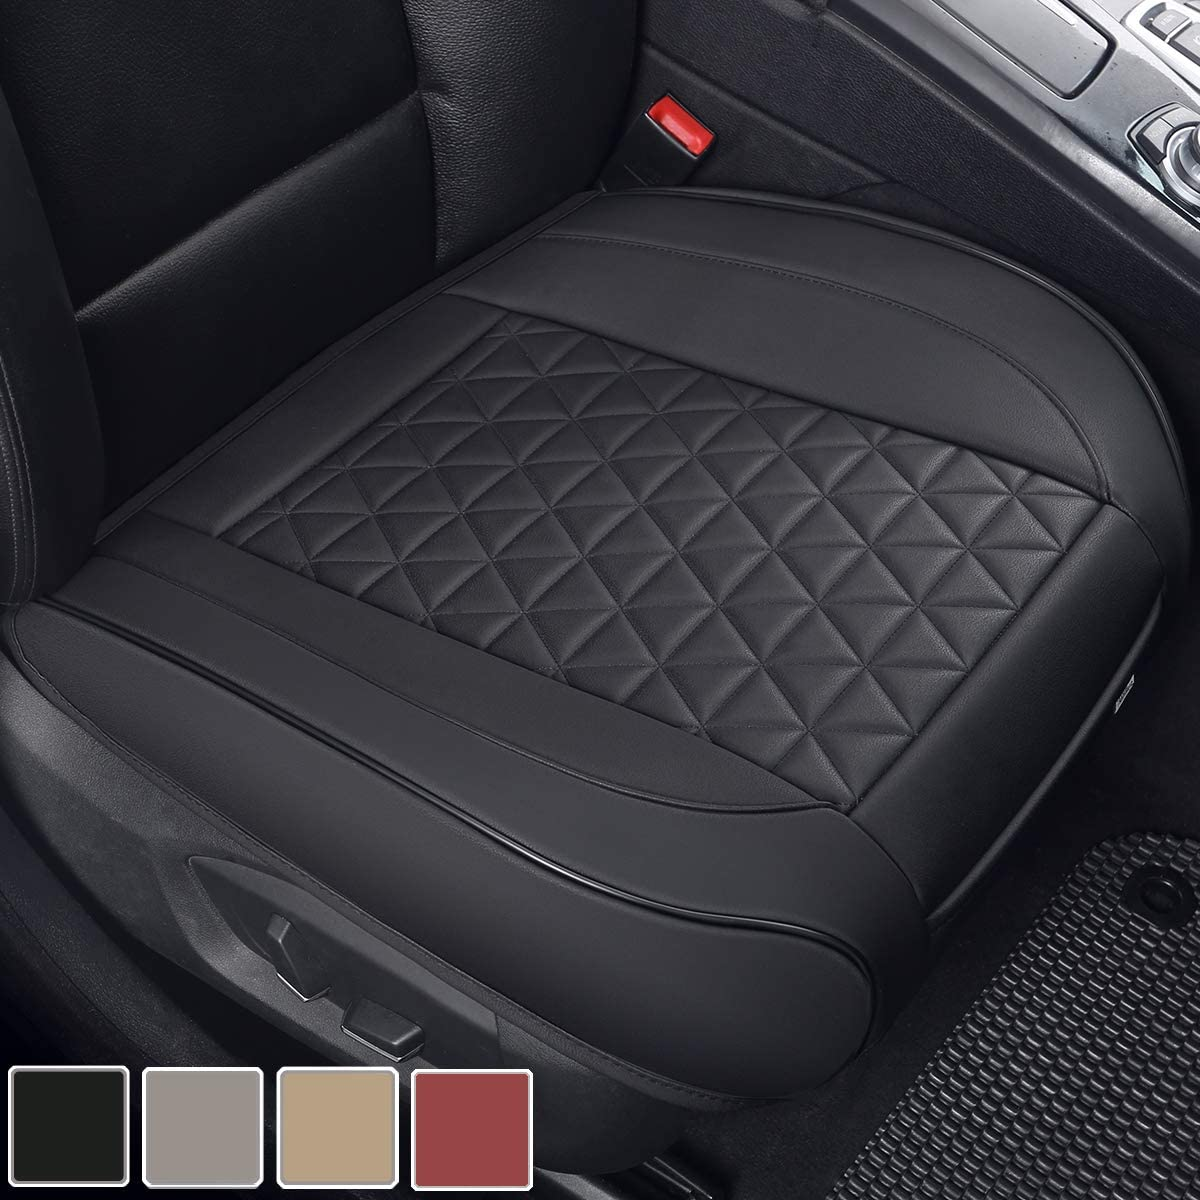 Black Panther Luxury PU Leather Car Seat Cover Protector for Front Seat Bottom,Compatible with 90% Vehicles (Sedan SUV Truck Van MPV) - 1 Piece,Black (21.26×20.86 Inches)